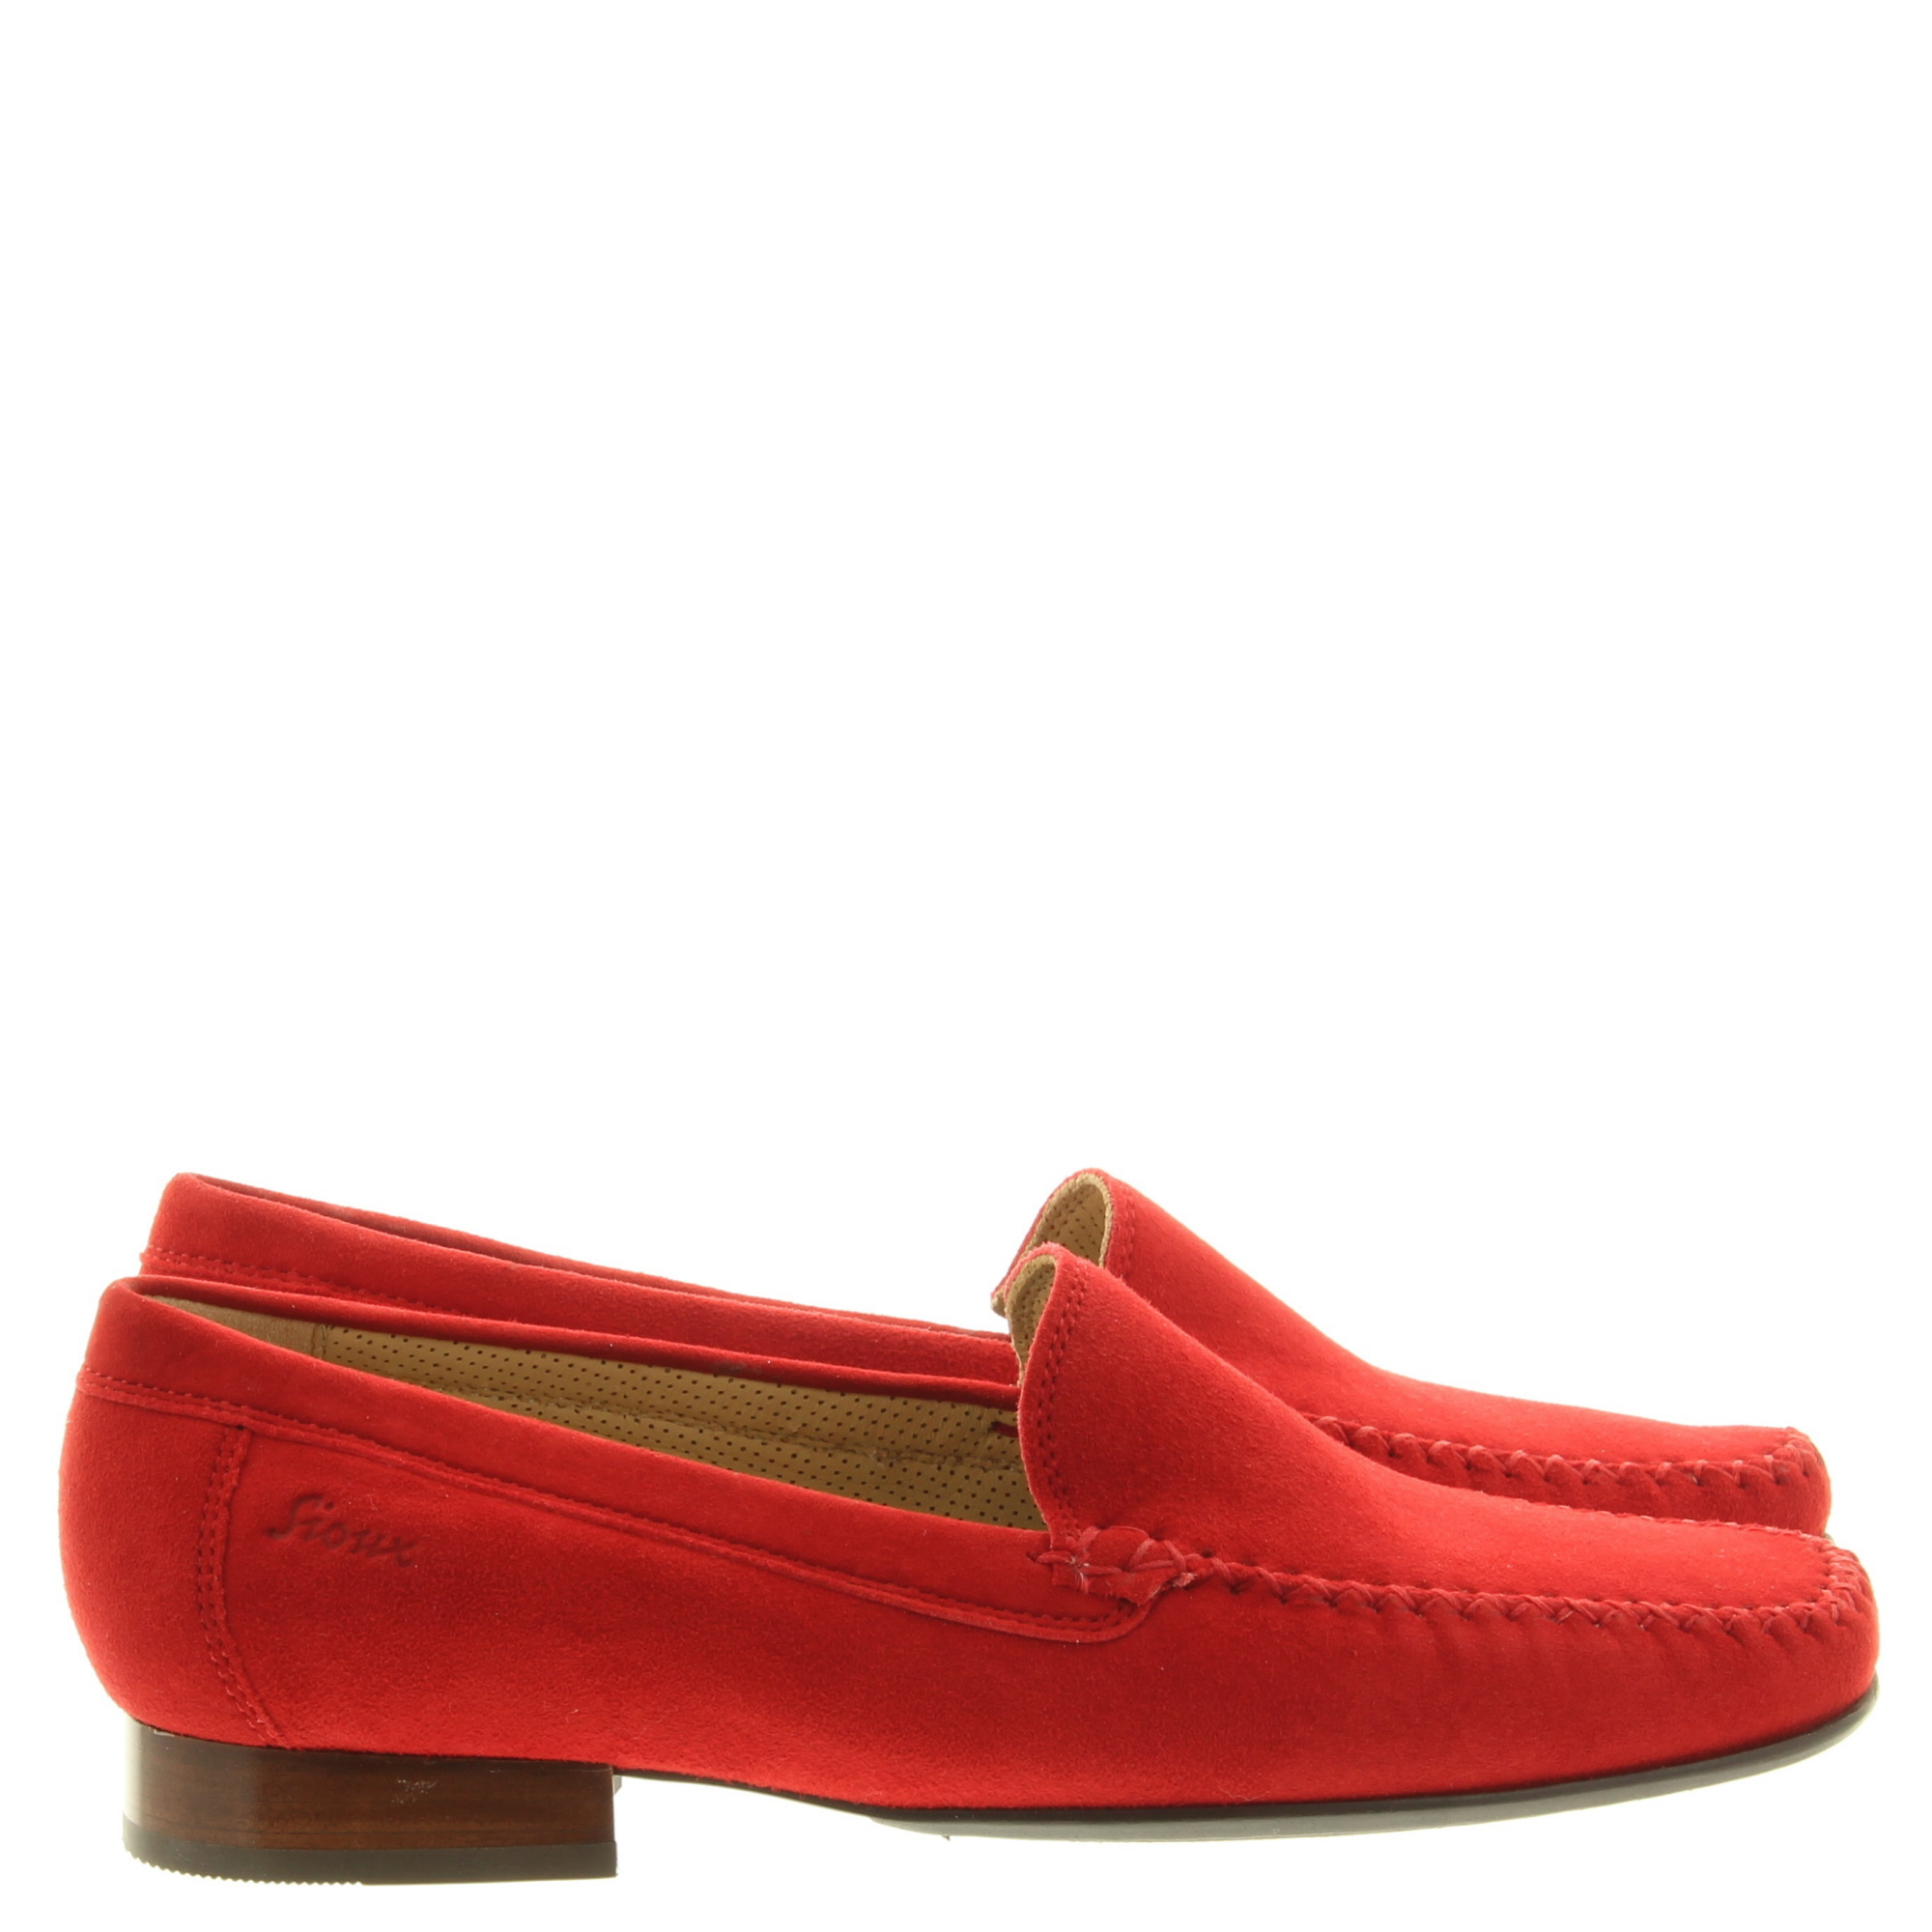 Sioux 63129 Campina red